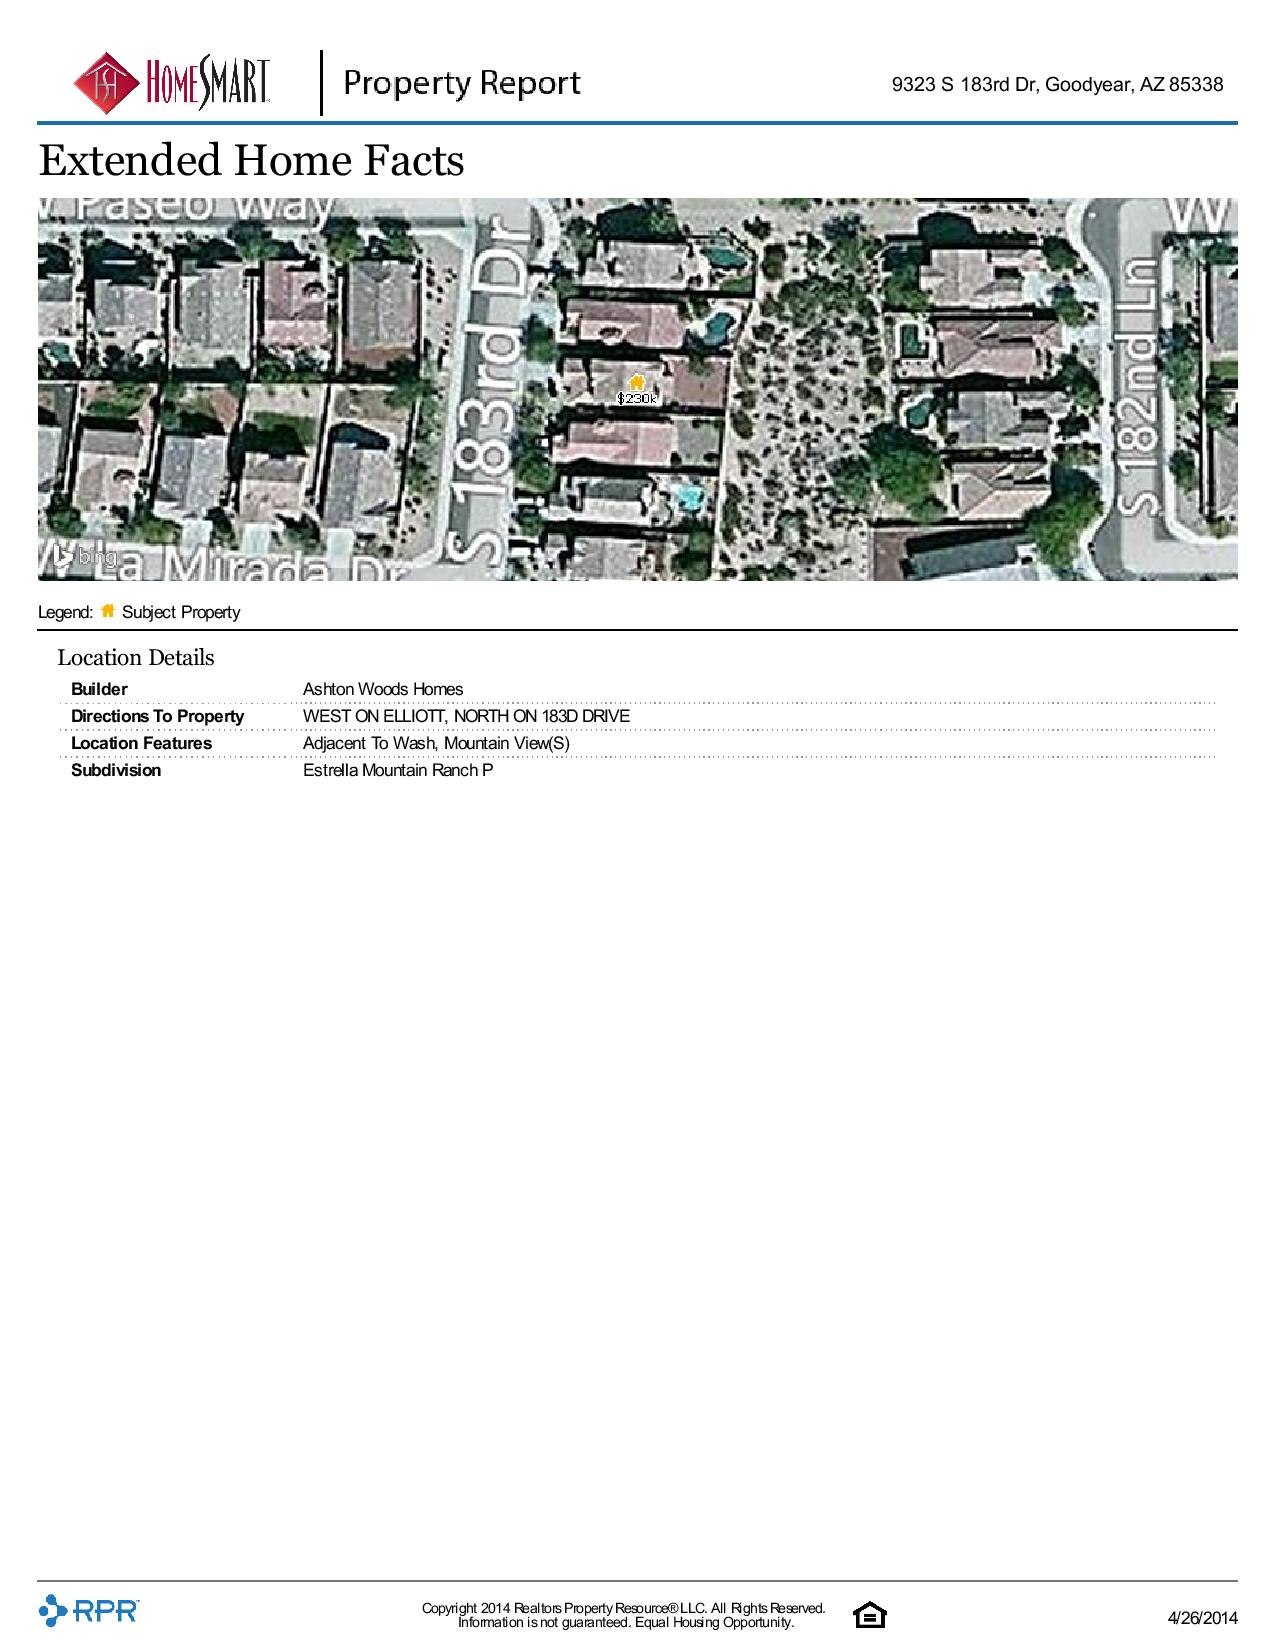 9323-S-183rd-Dr-Goodyear-AZ-85338-page-004